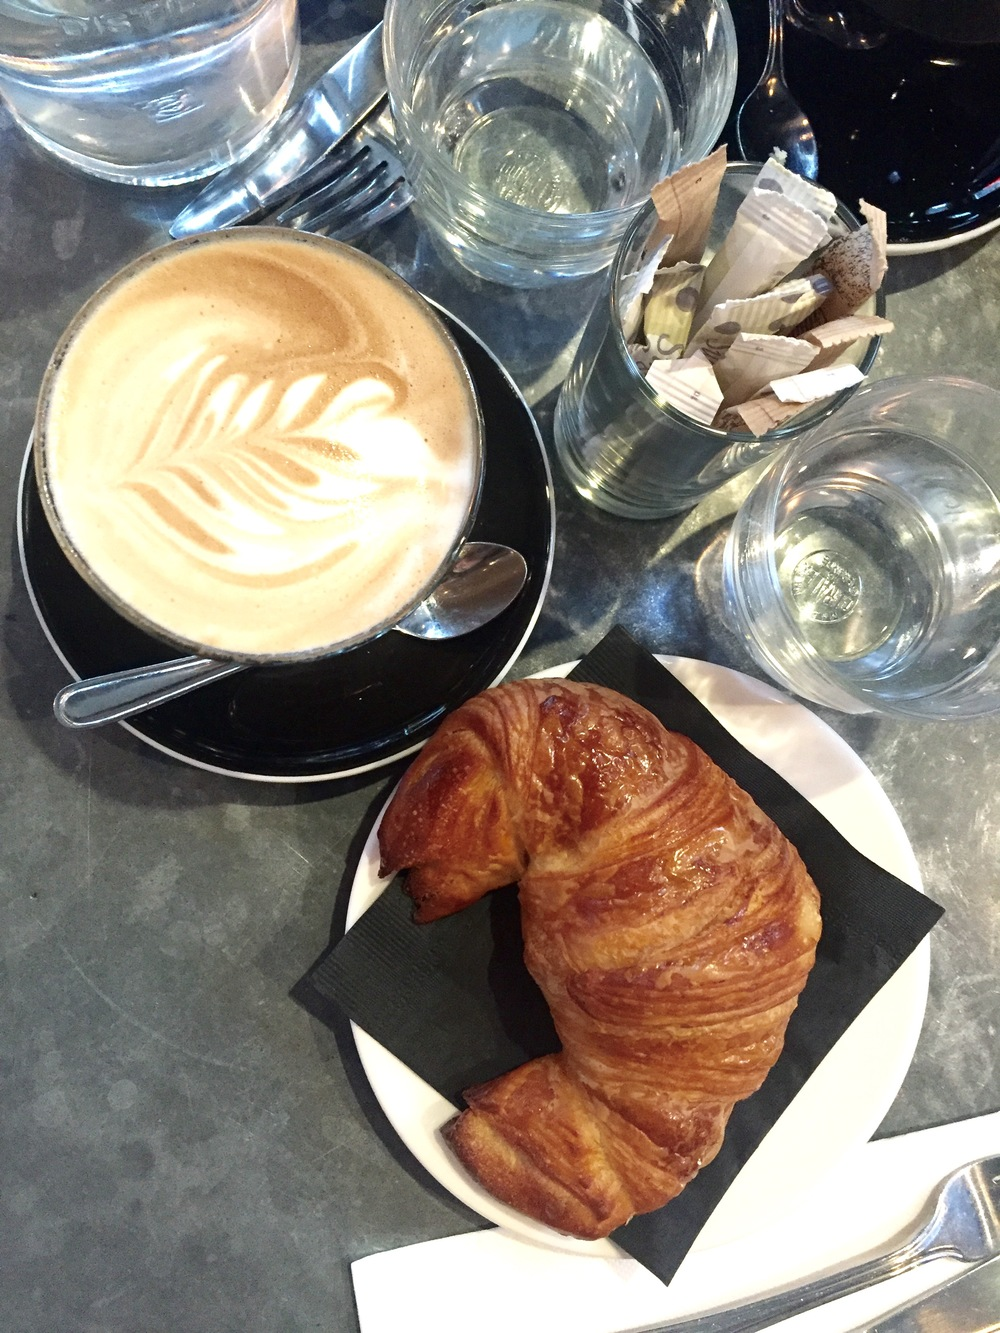 Cafe au lait and a butter croissant of flaky perfection.